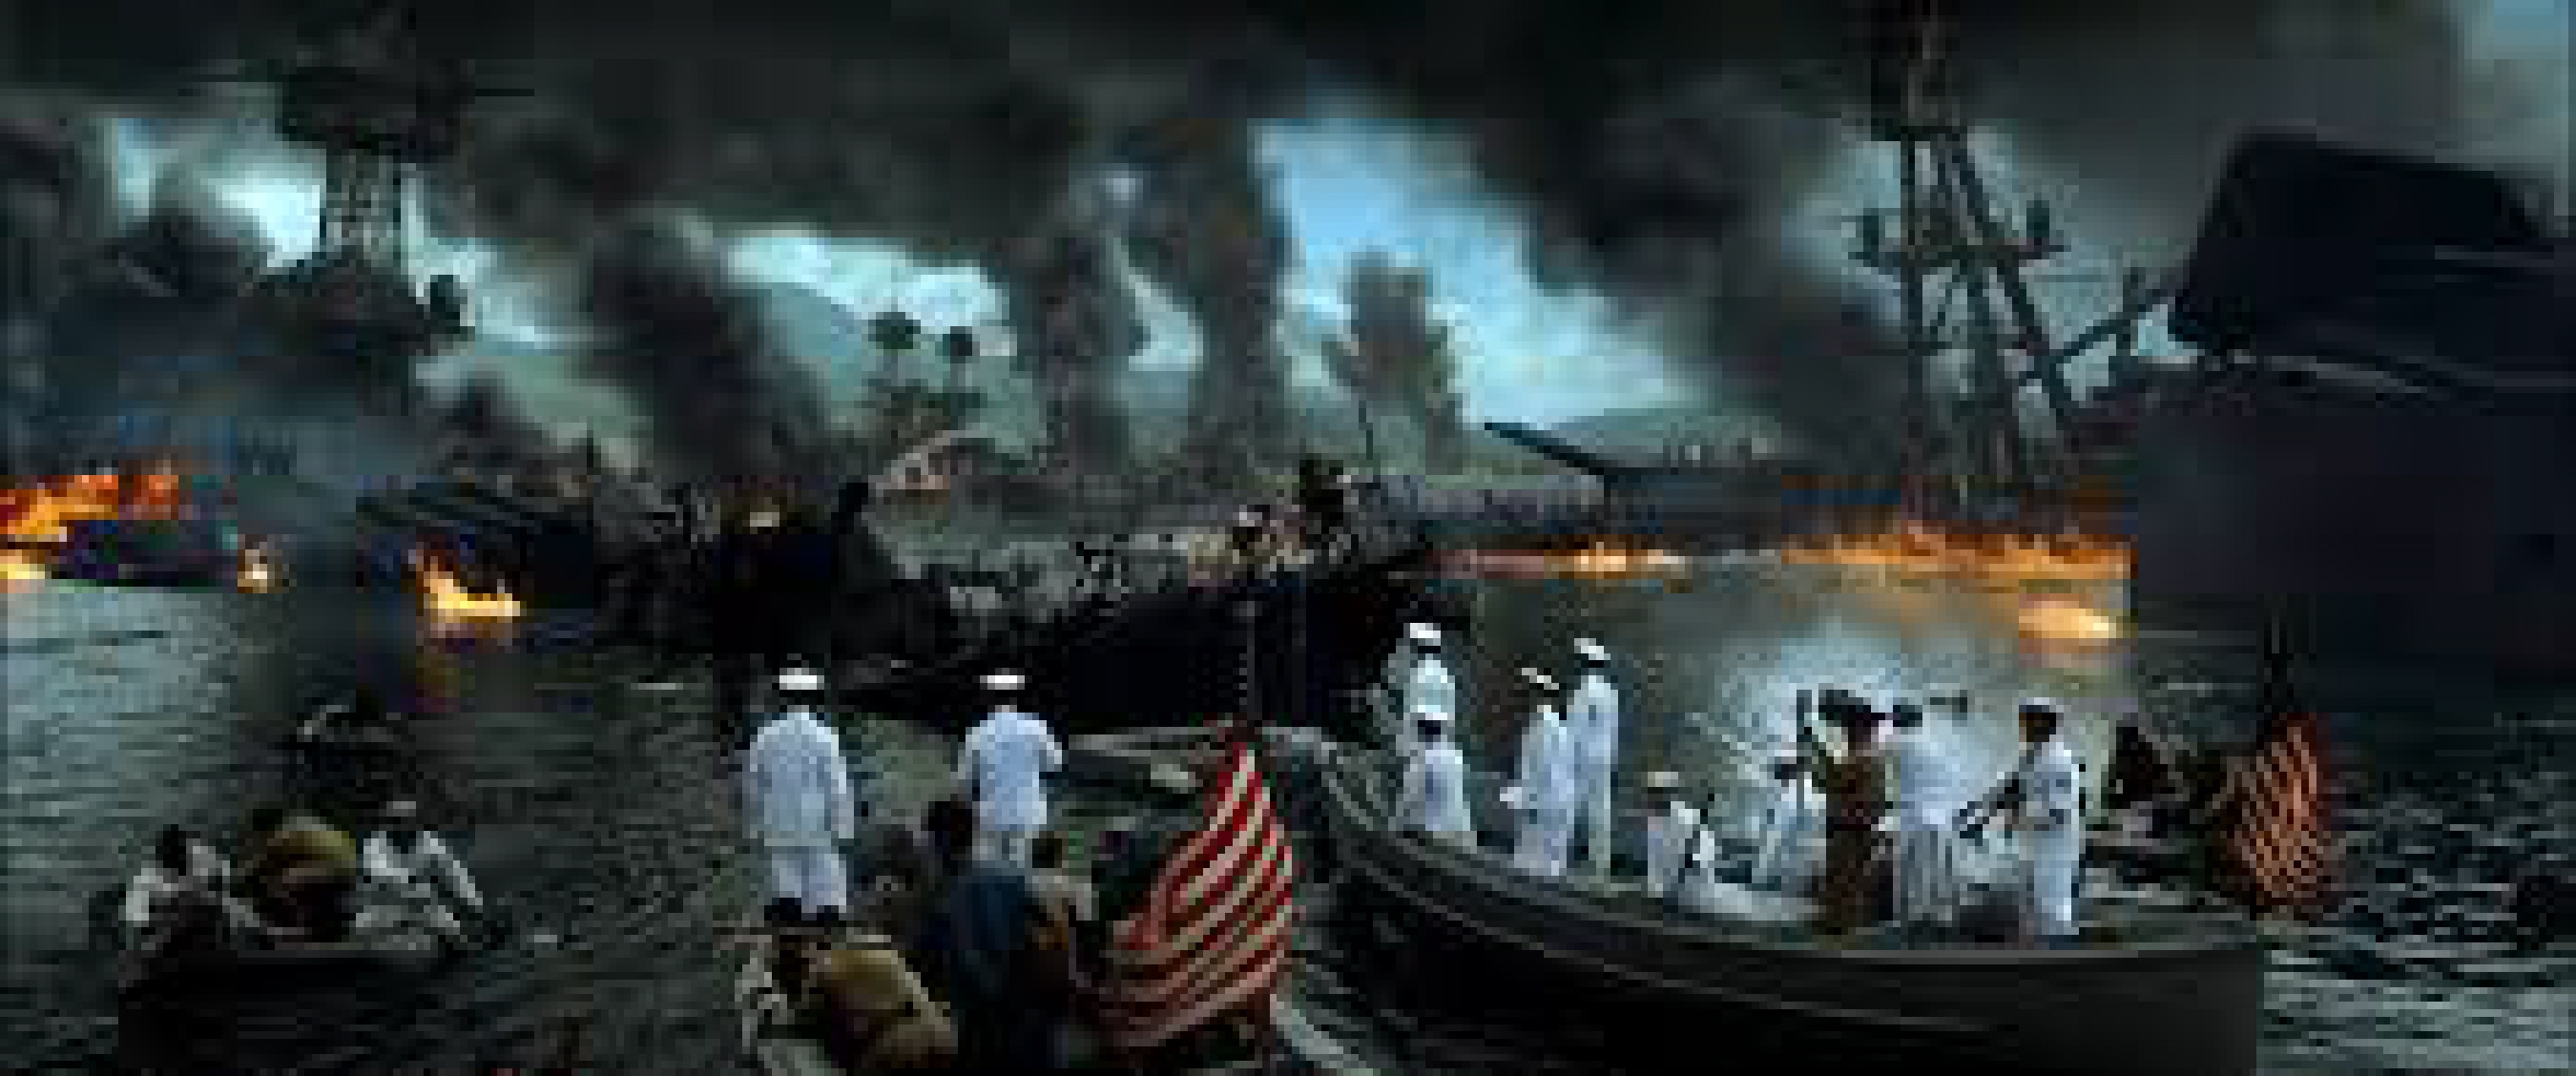 how had attack on pearl harbor For a generation of younger americans, the 9/11 attacks on new york and washington, dc, are the equivalent of pearl harbor but how legitimate is the comparison.